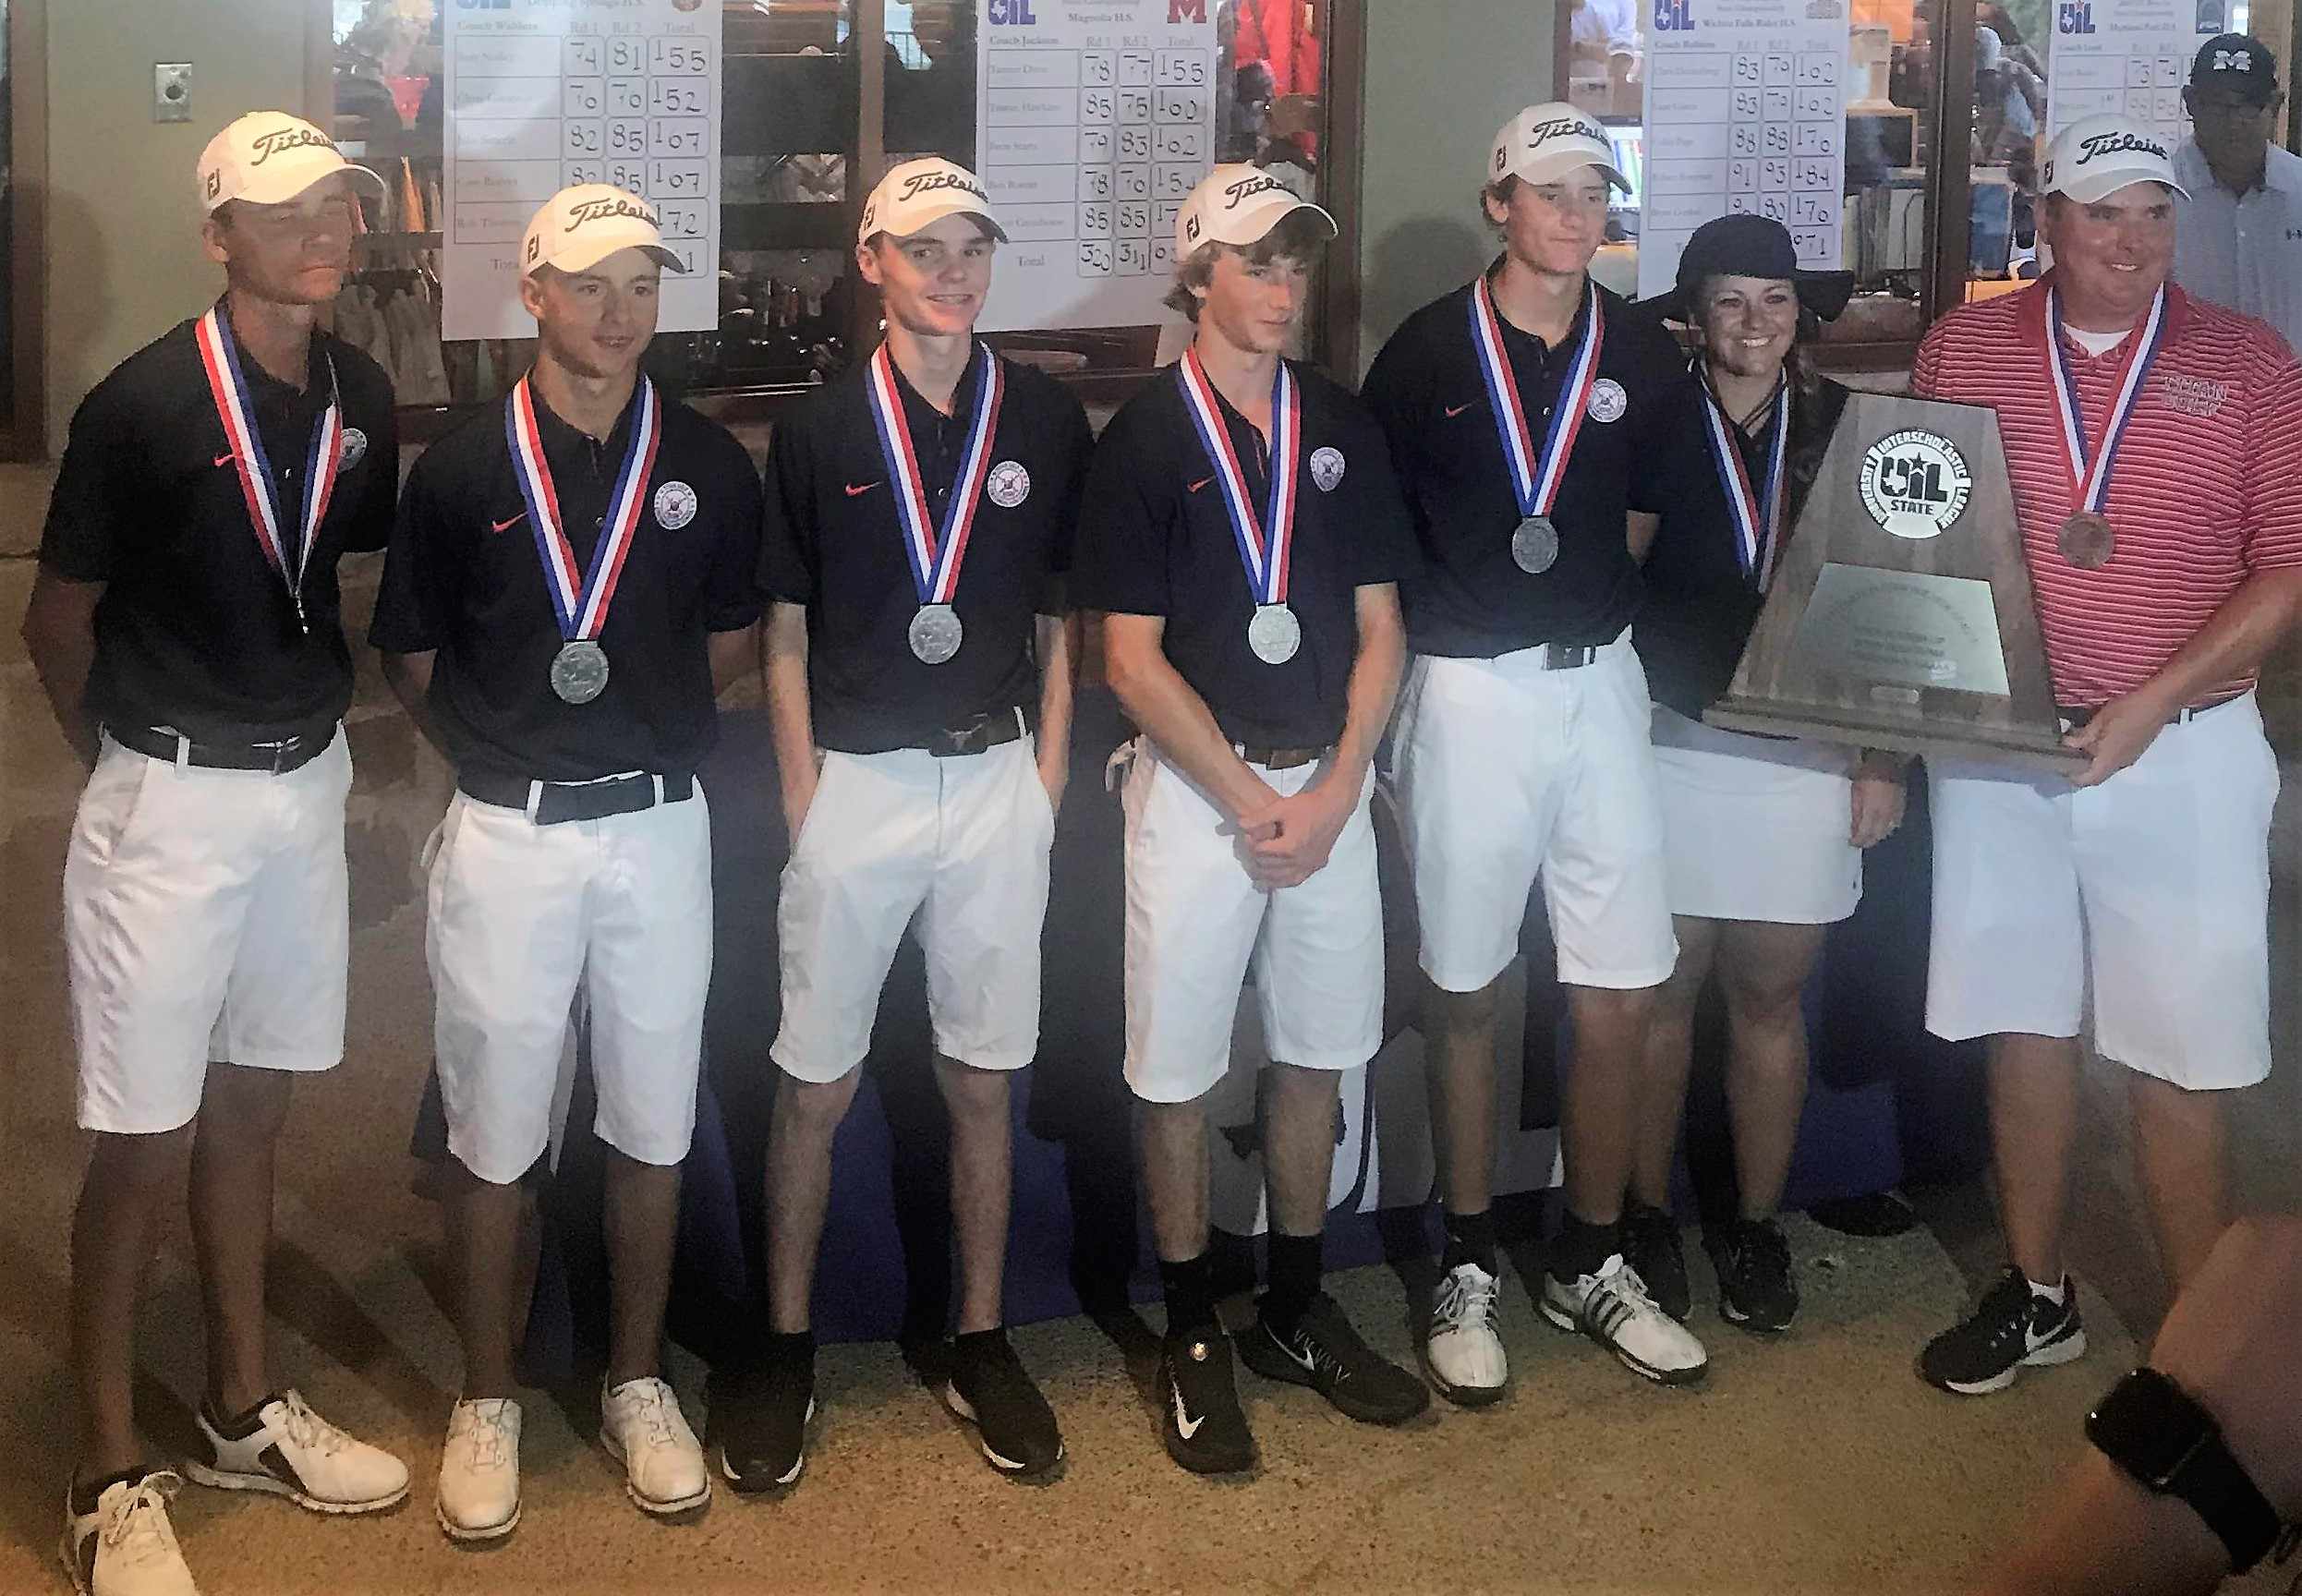 The Centennial High School Boys Golf Team